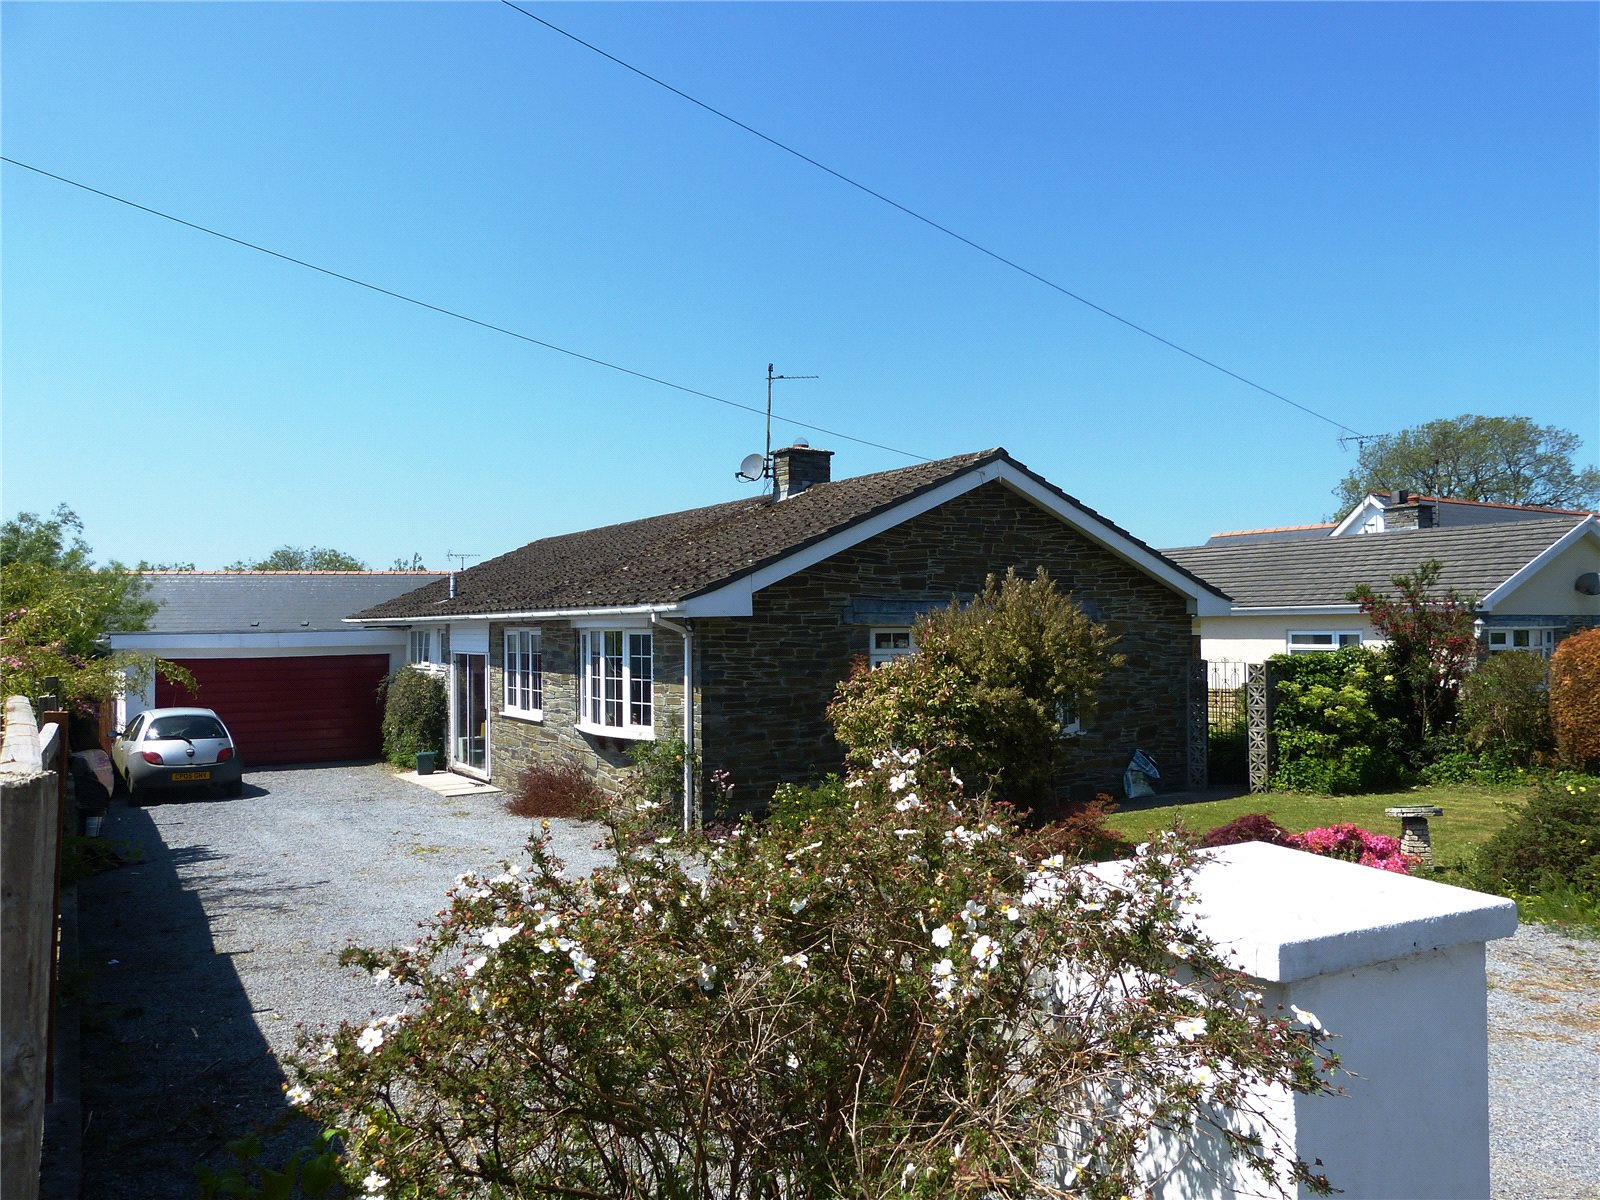 4 Bedrooms Detached Bungalow for sale in Lorien, Ludchurch, Narberth, Pembrokeshire